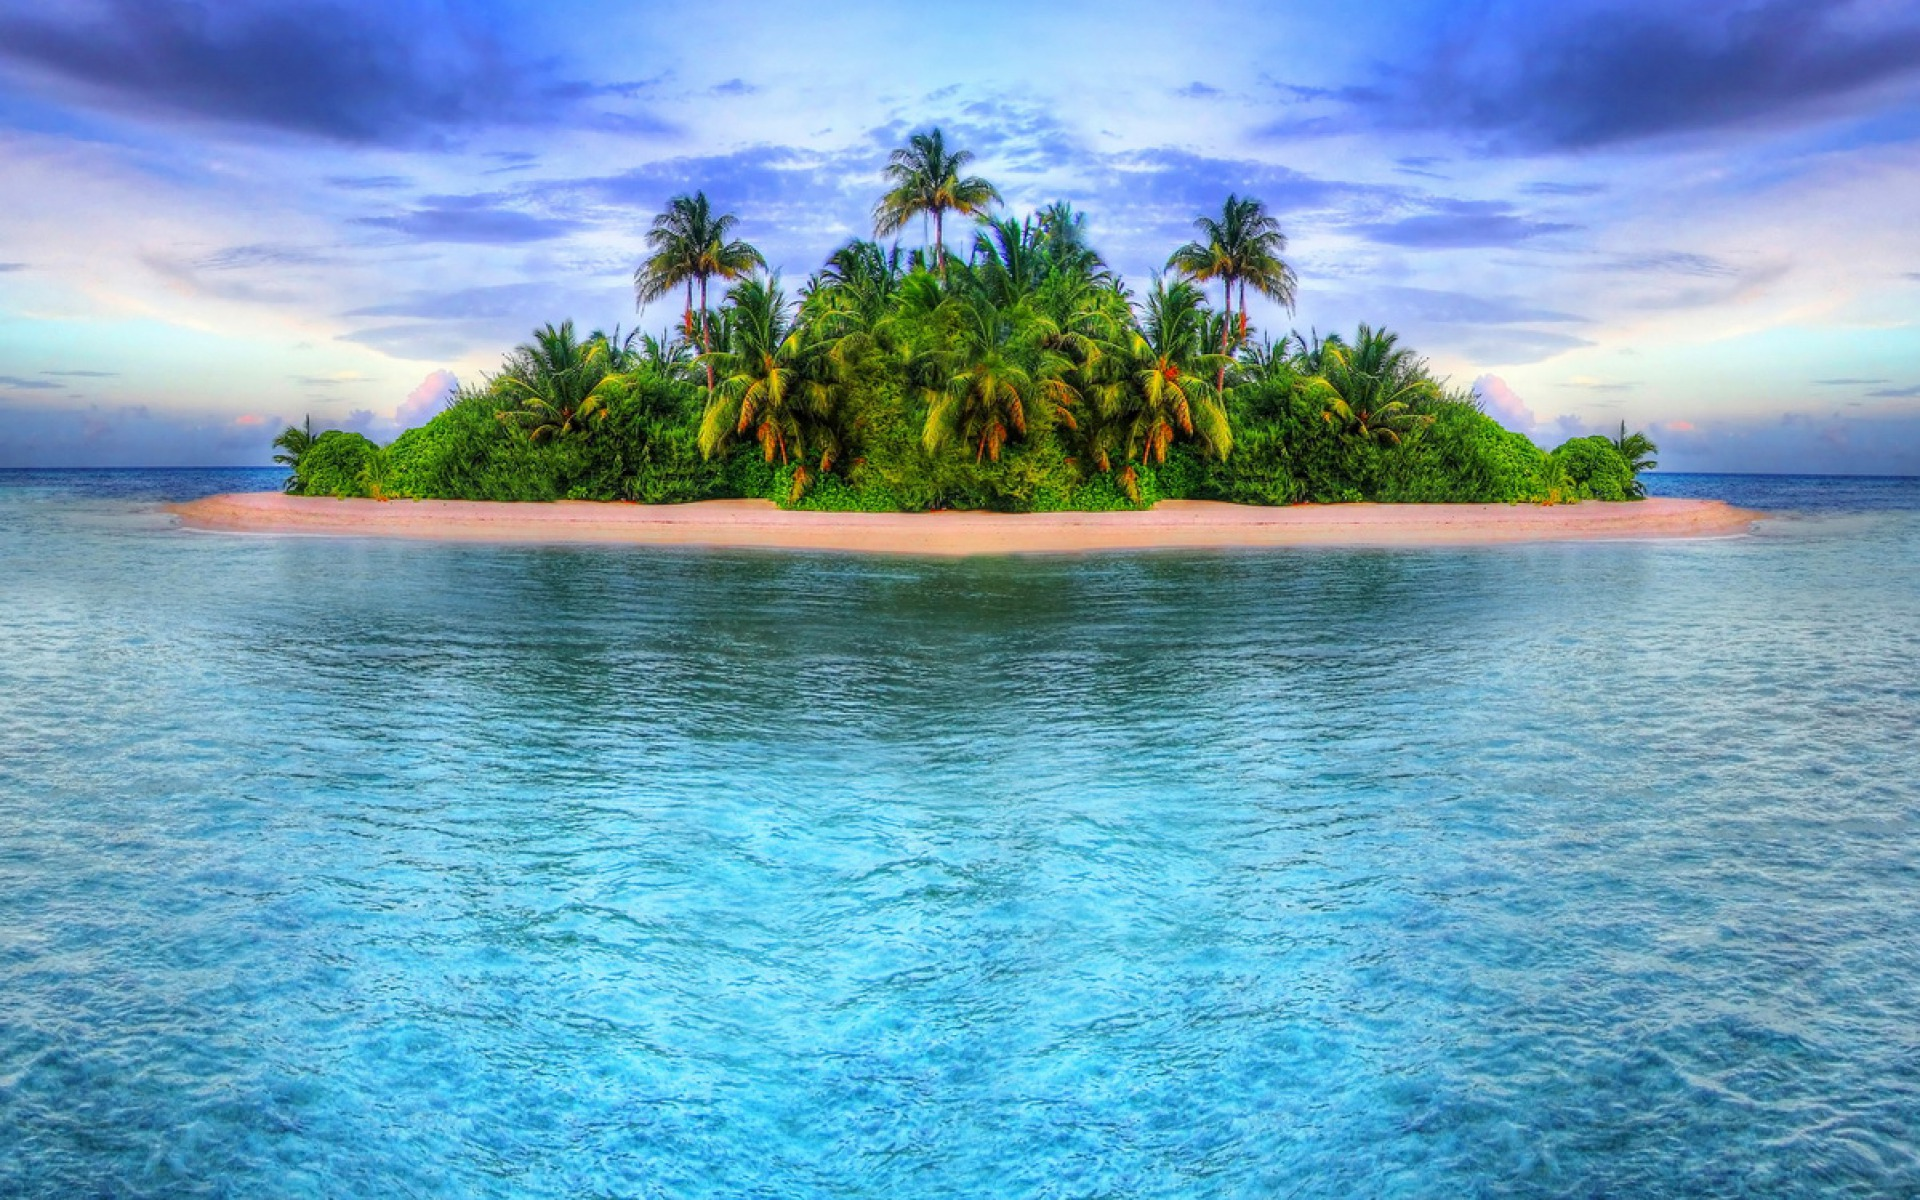 Hd Tropical Island Beach Paradise Wallpapers And Backgrounds: Tropical Islands Wallpaper